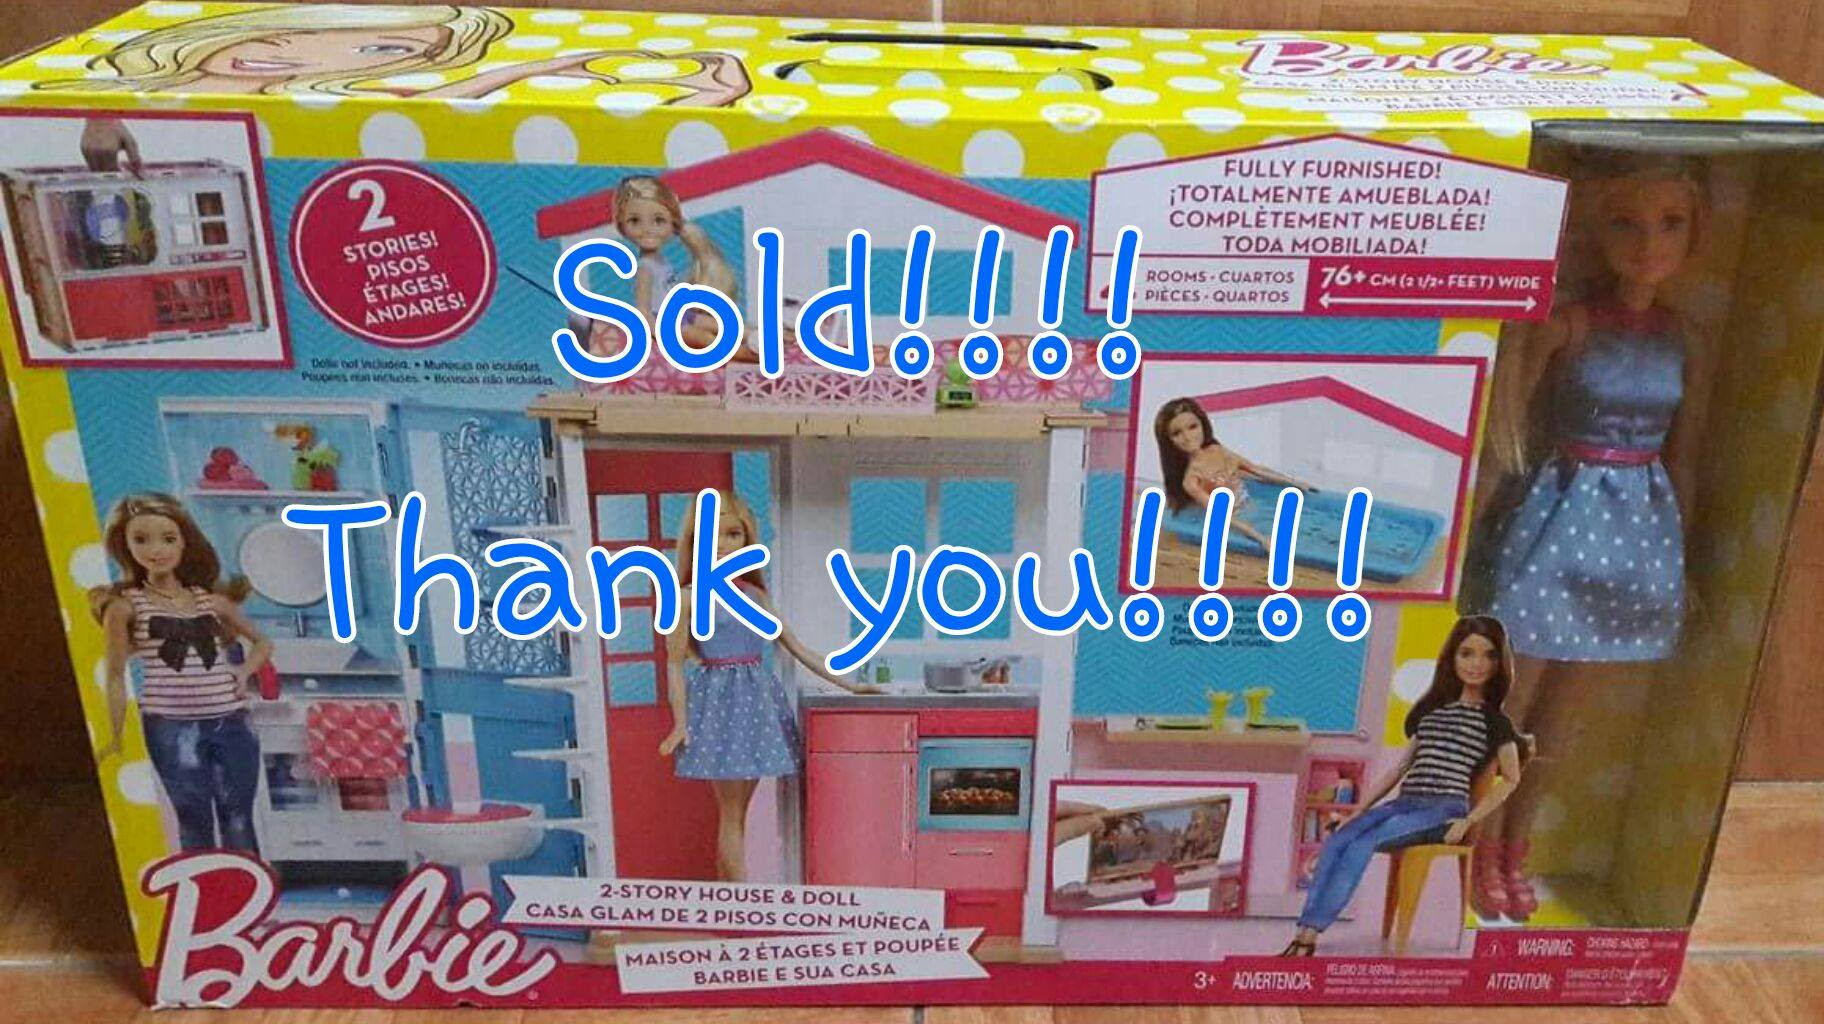 Barbie 2-Story House & Doll, Toys & Games, Toys on Carousell